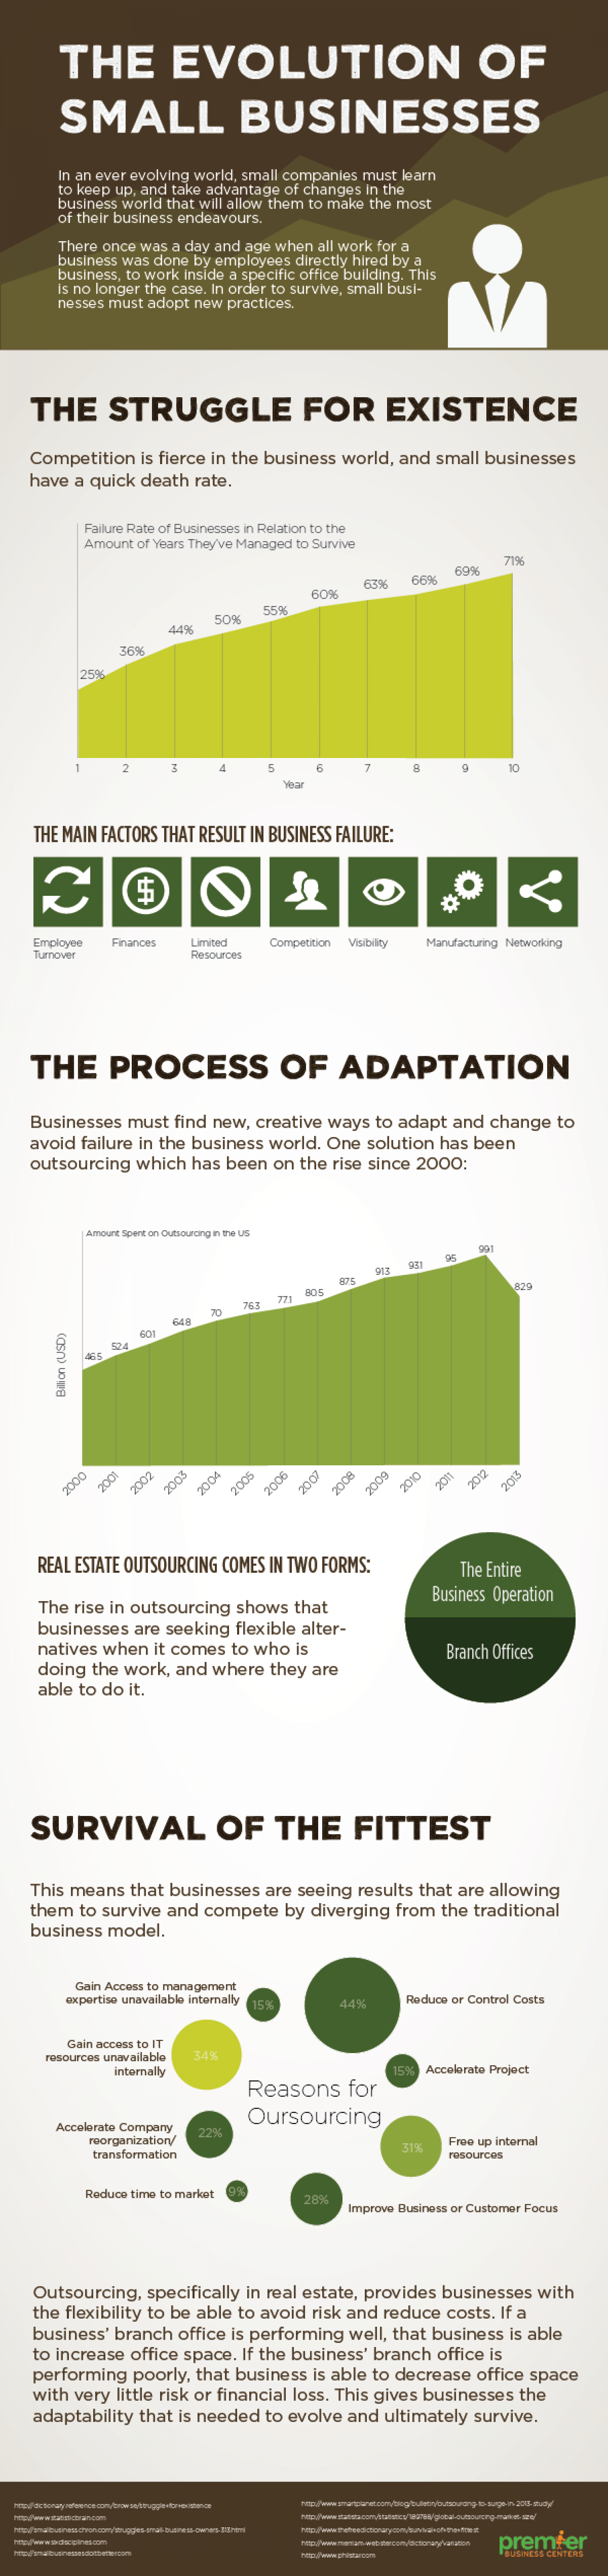 The Evolution Of Small Businesses Infographic